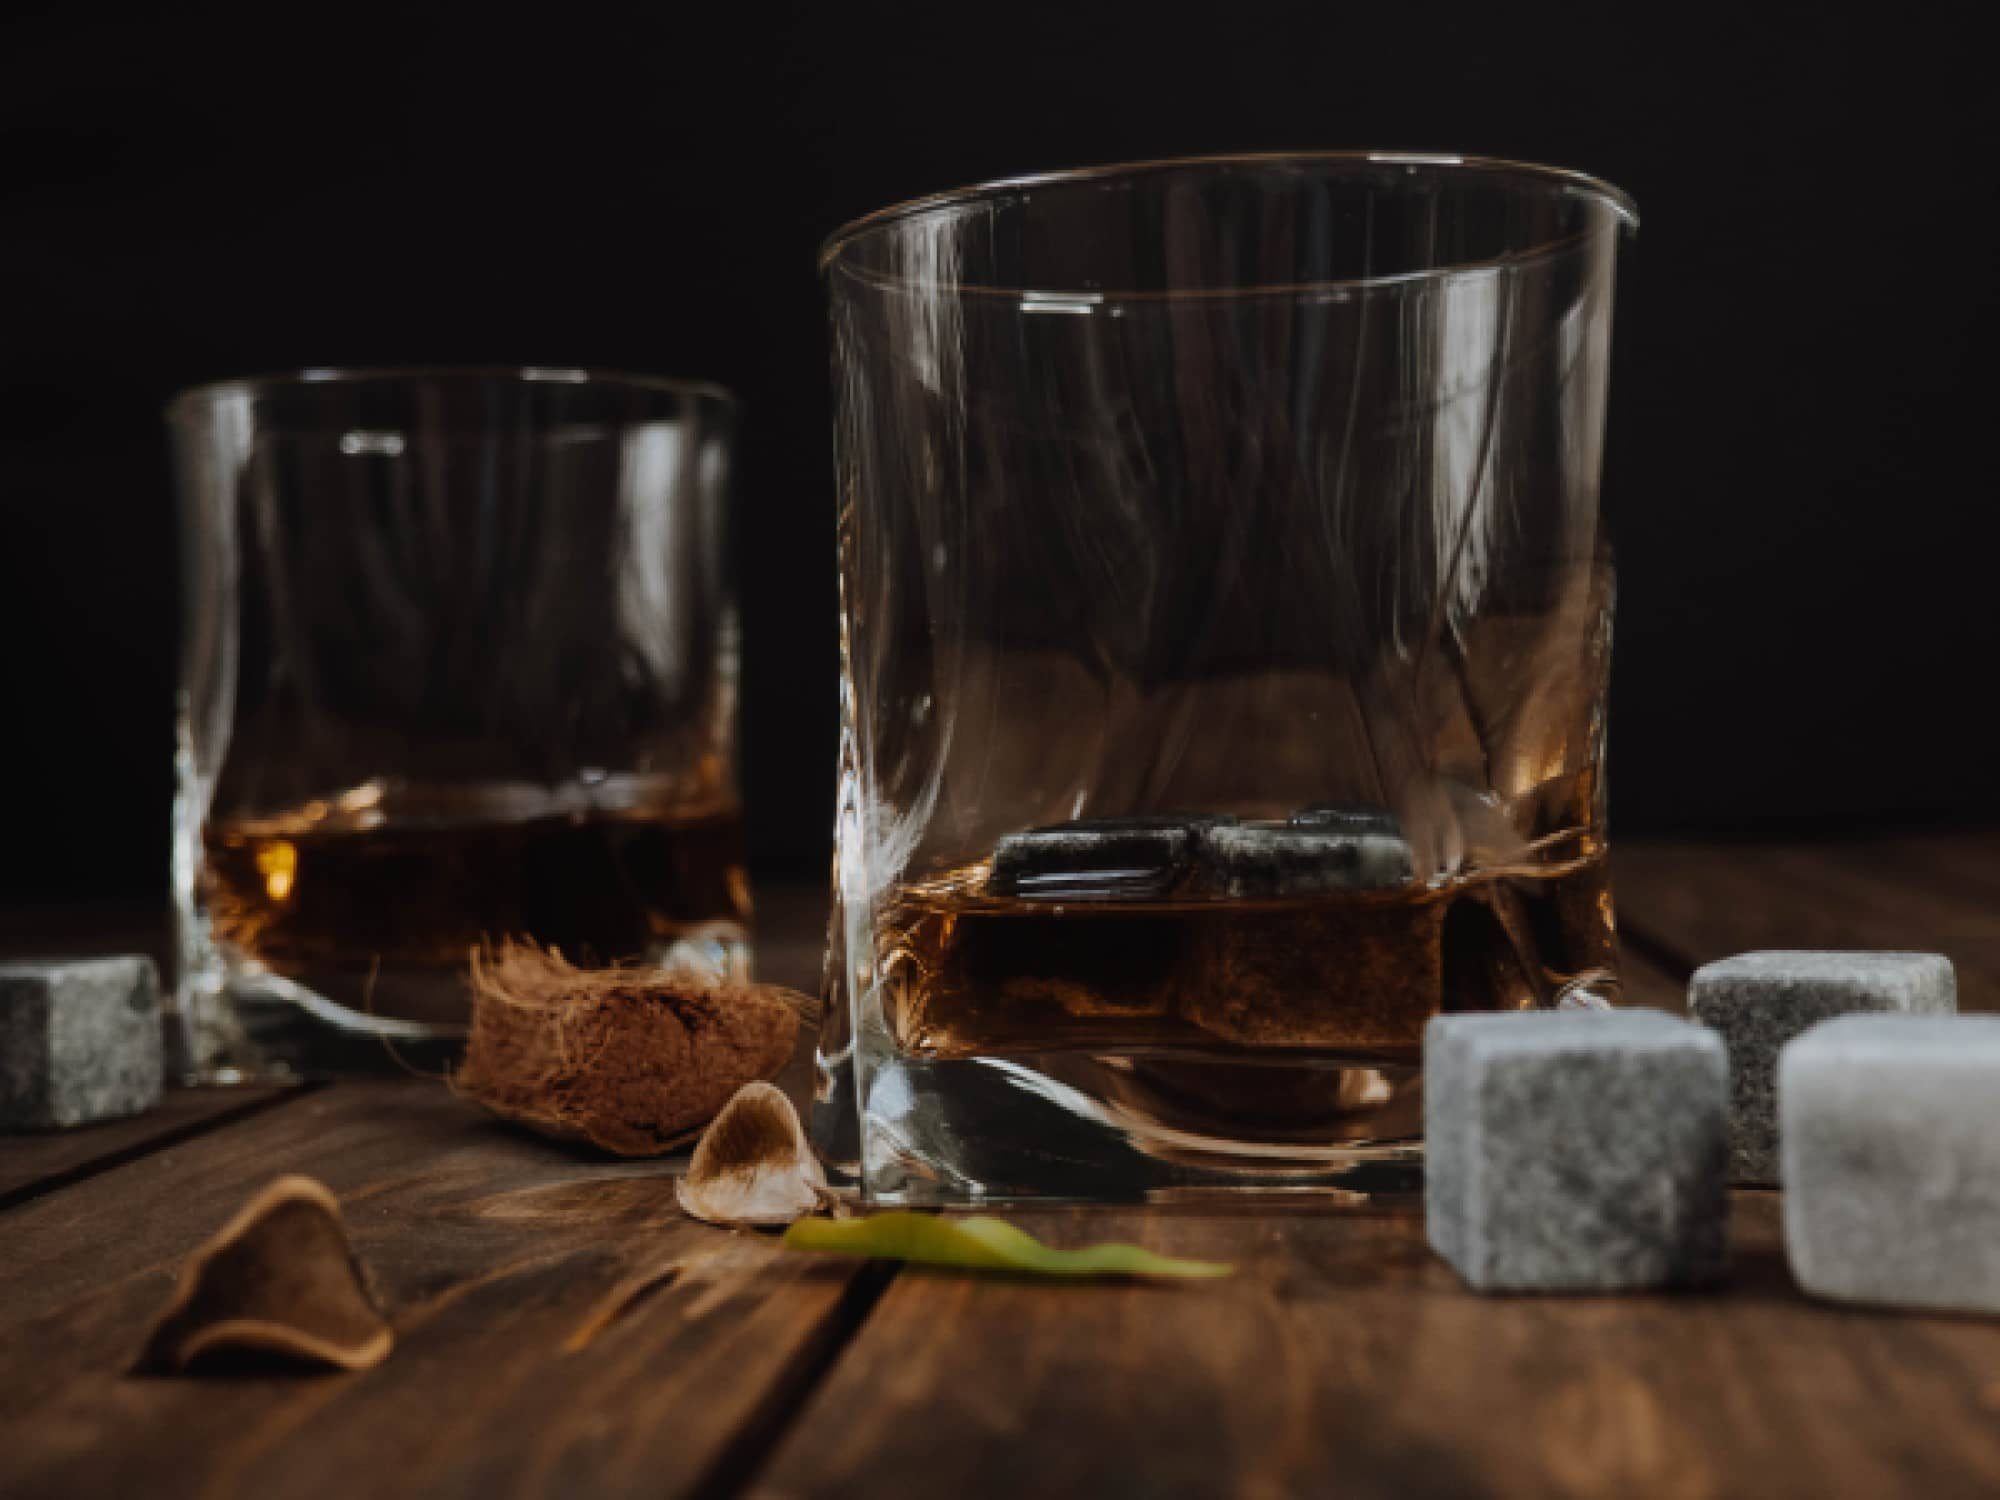 Two glasses of whisky close to a few whisky stones